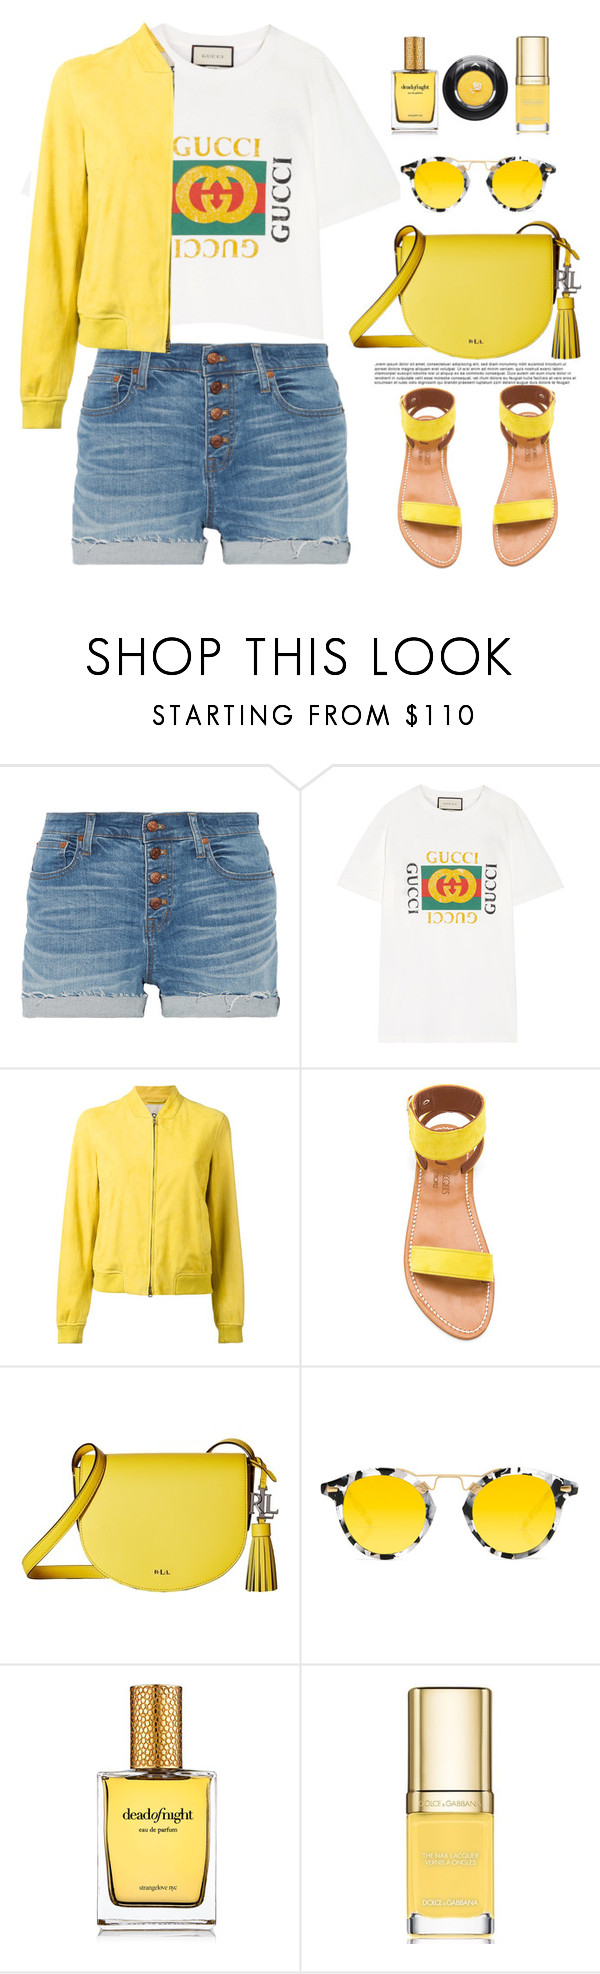 """""""Untitled #709"""" by jovana-p-com ❤ liked on Polyvore featuring Madewell, Gucci, Herno, K. Jacques, Lauren Ralph Lauren, Krewe, Strangelove NYC, Dolce&Gabbana and Lancôme"""